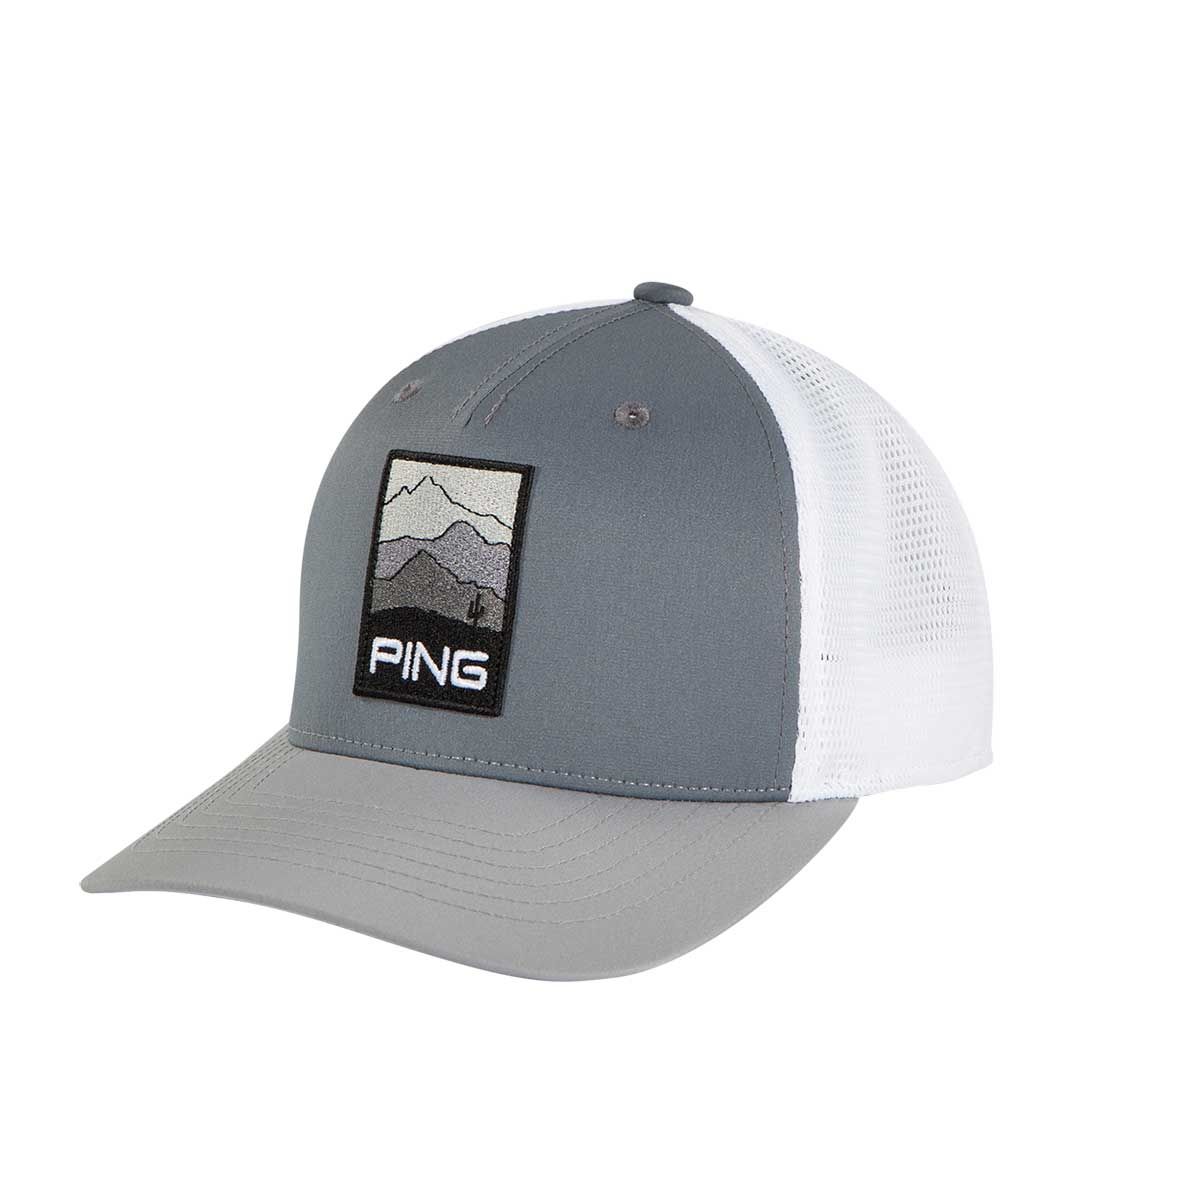 Ping 2018 Mountain Patch Hat